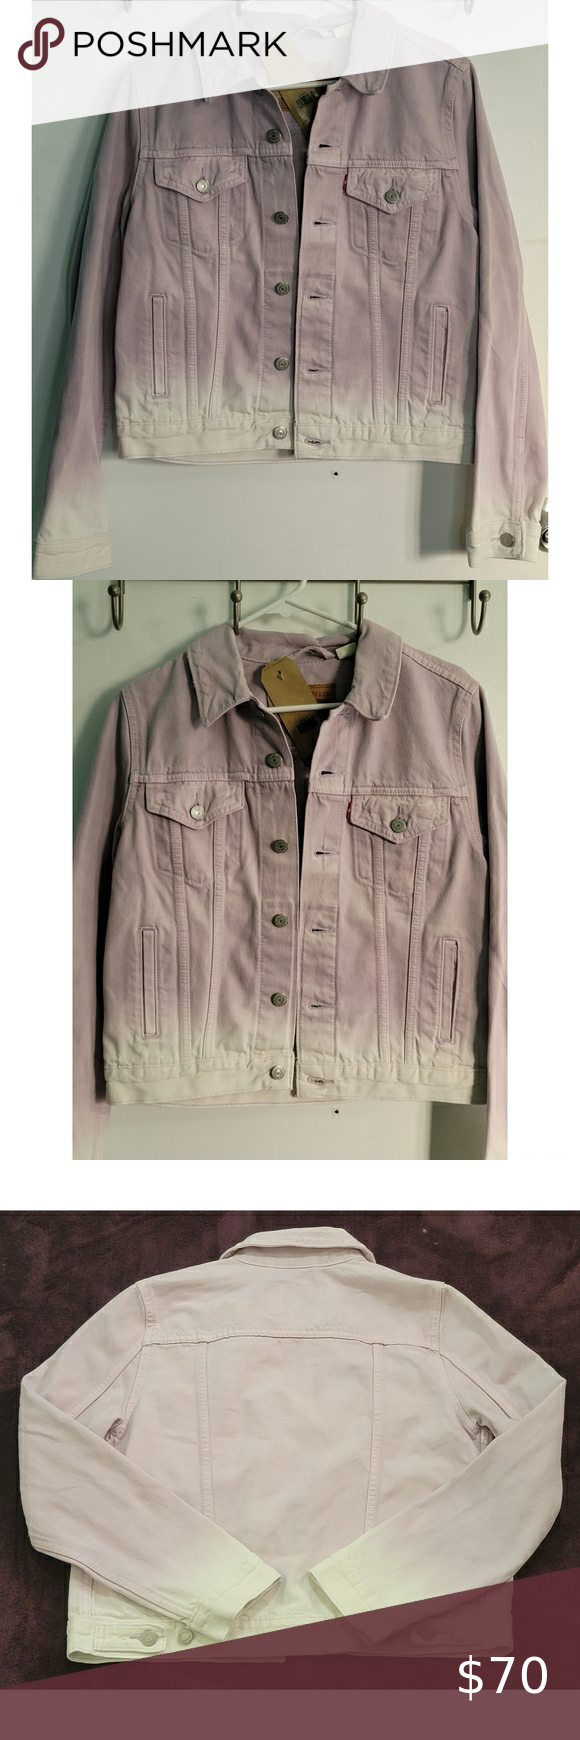 Levi's Orginal Trucker Jacket in Lavender Dip